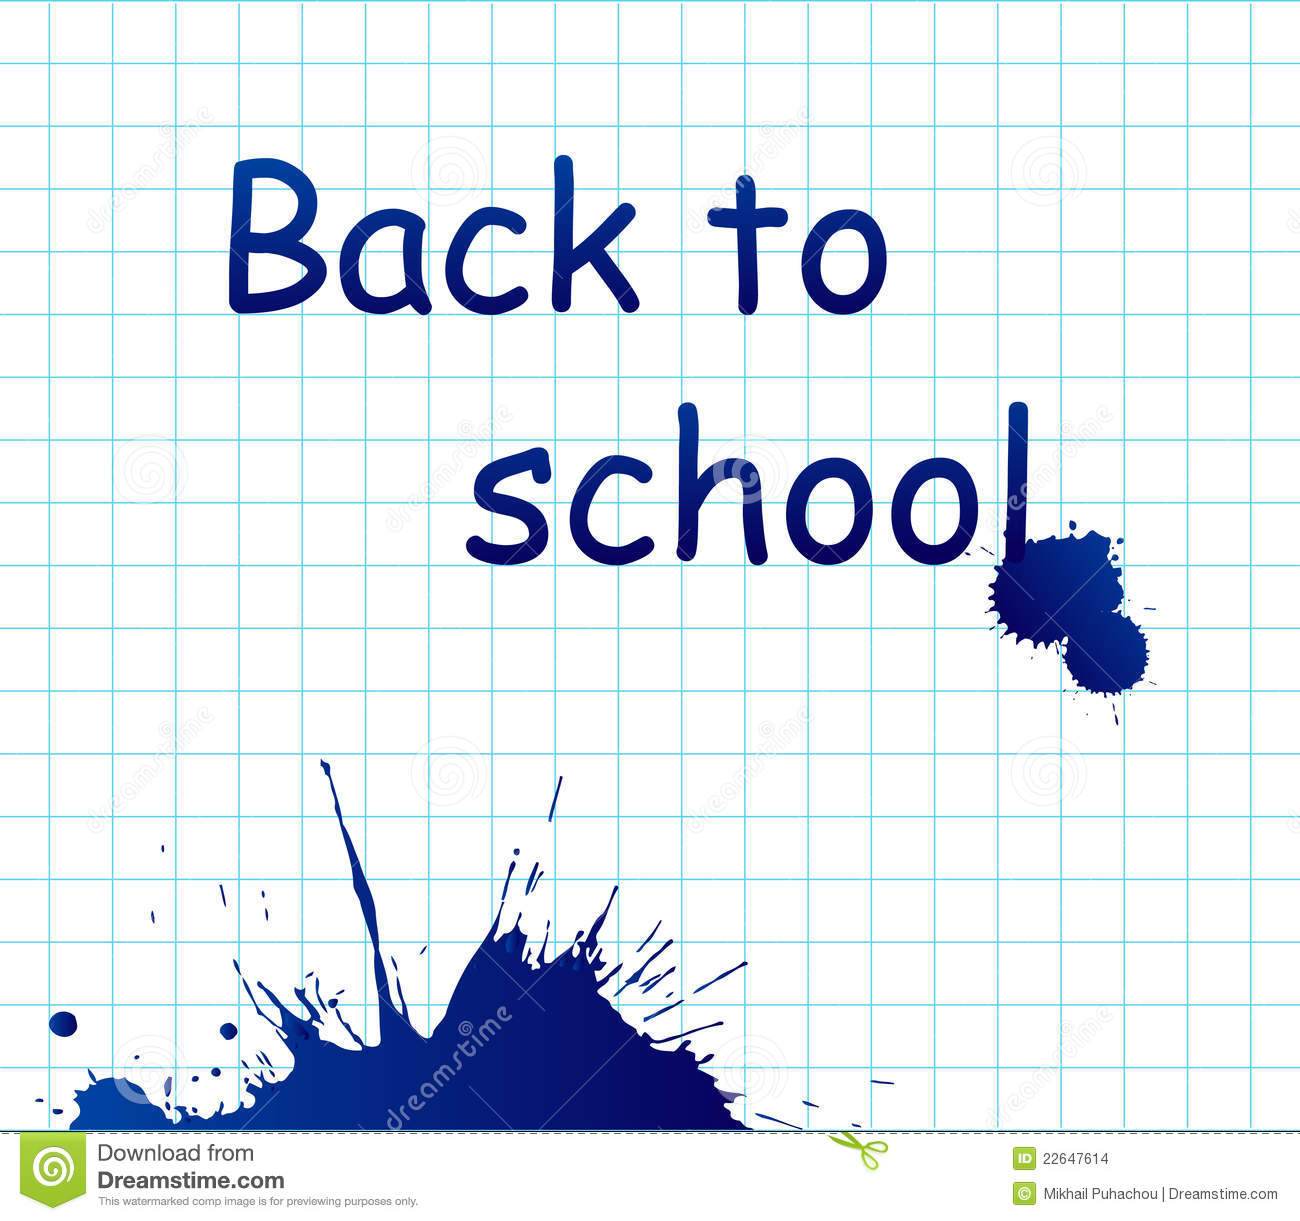 back to school vector - photo #37